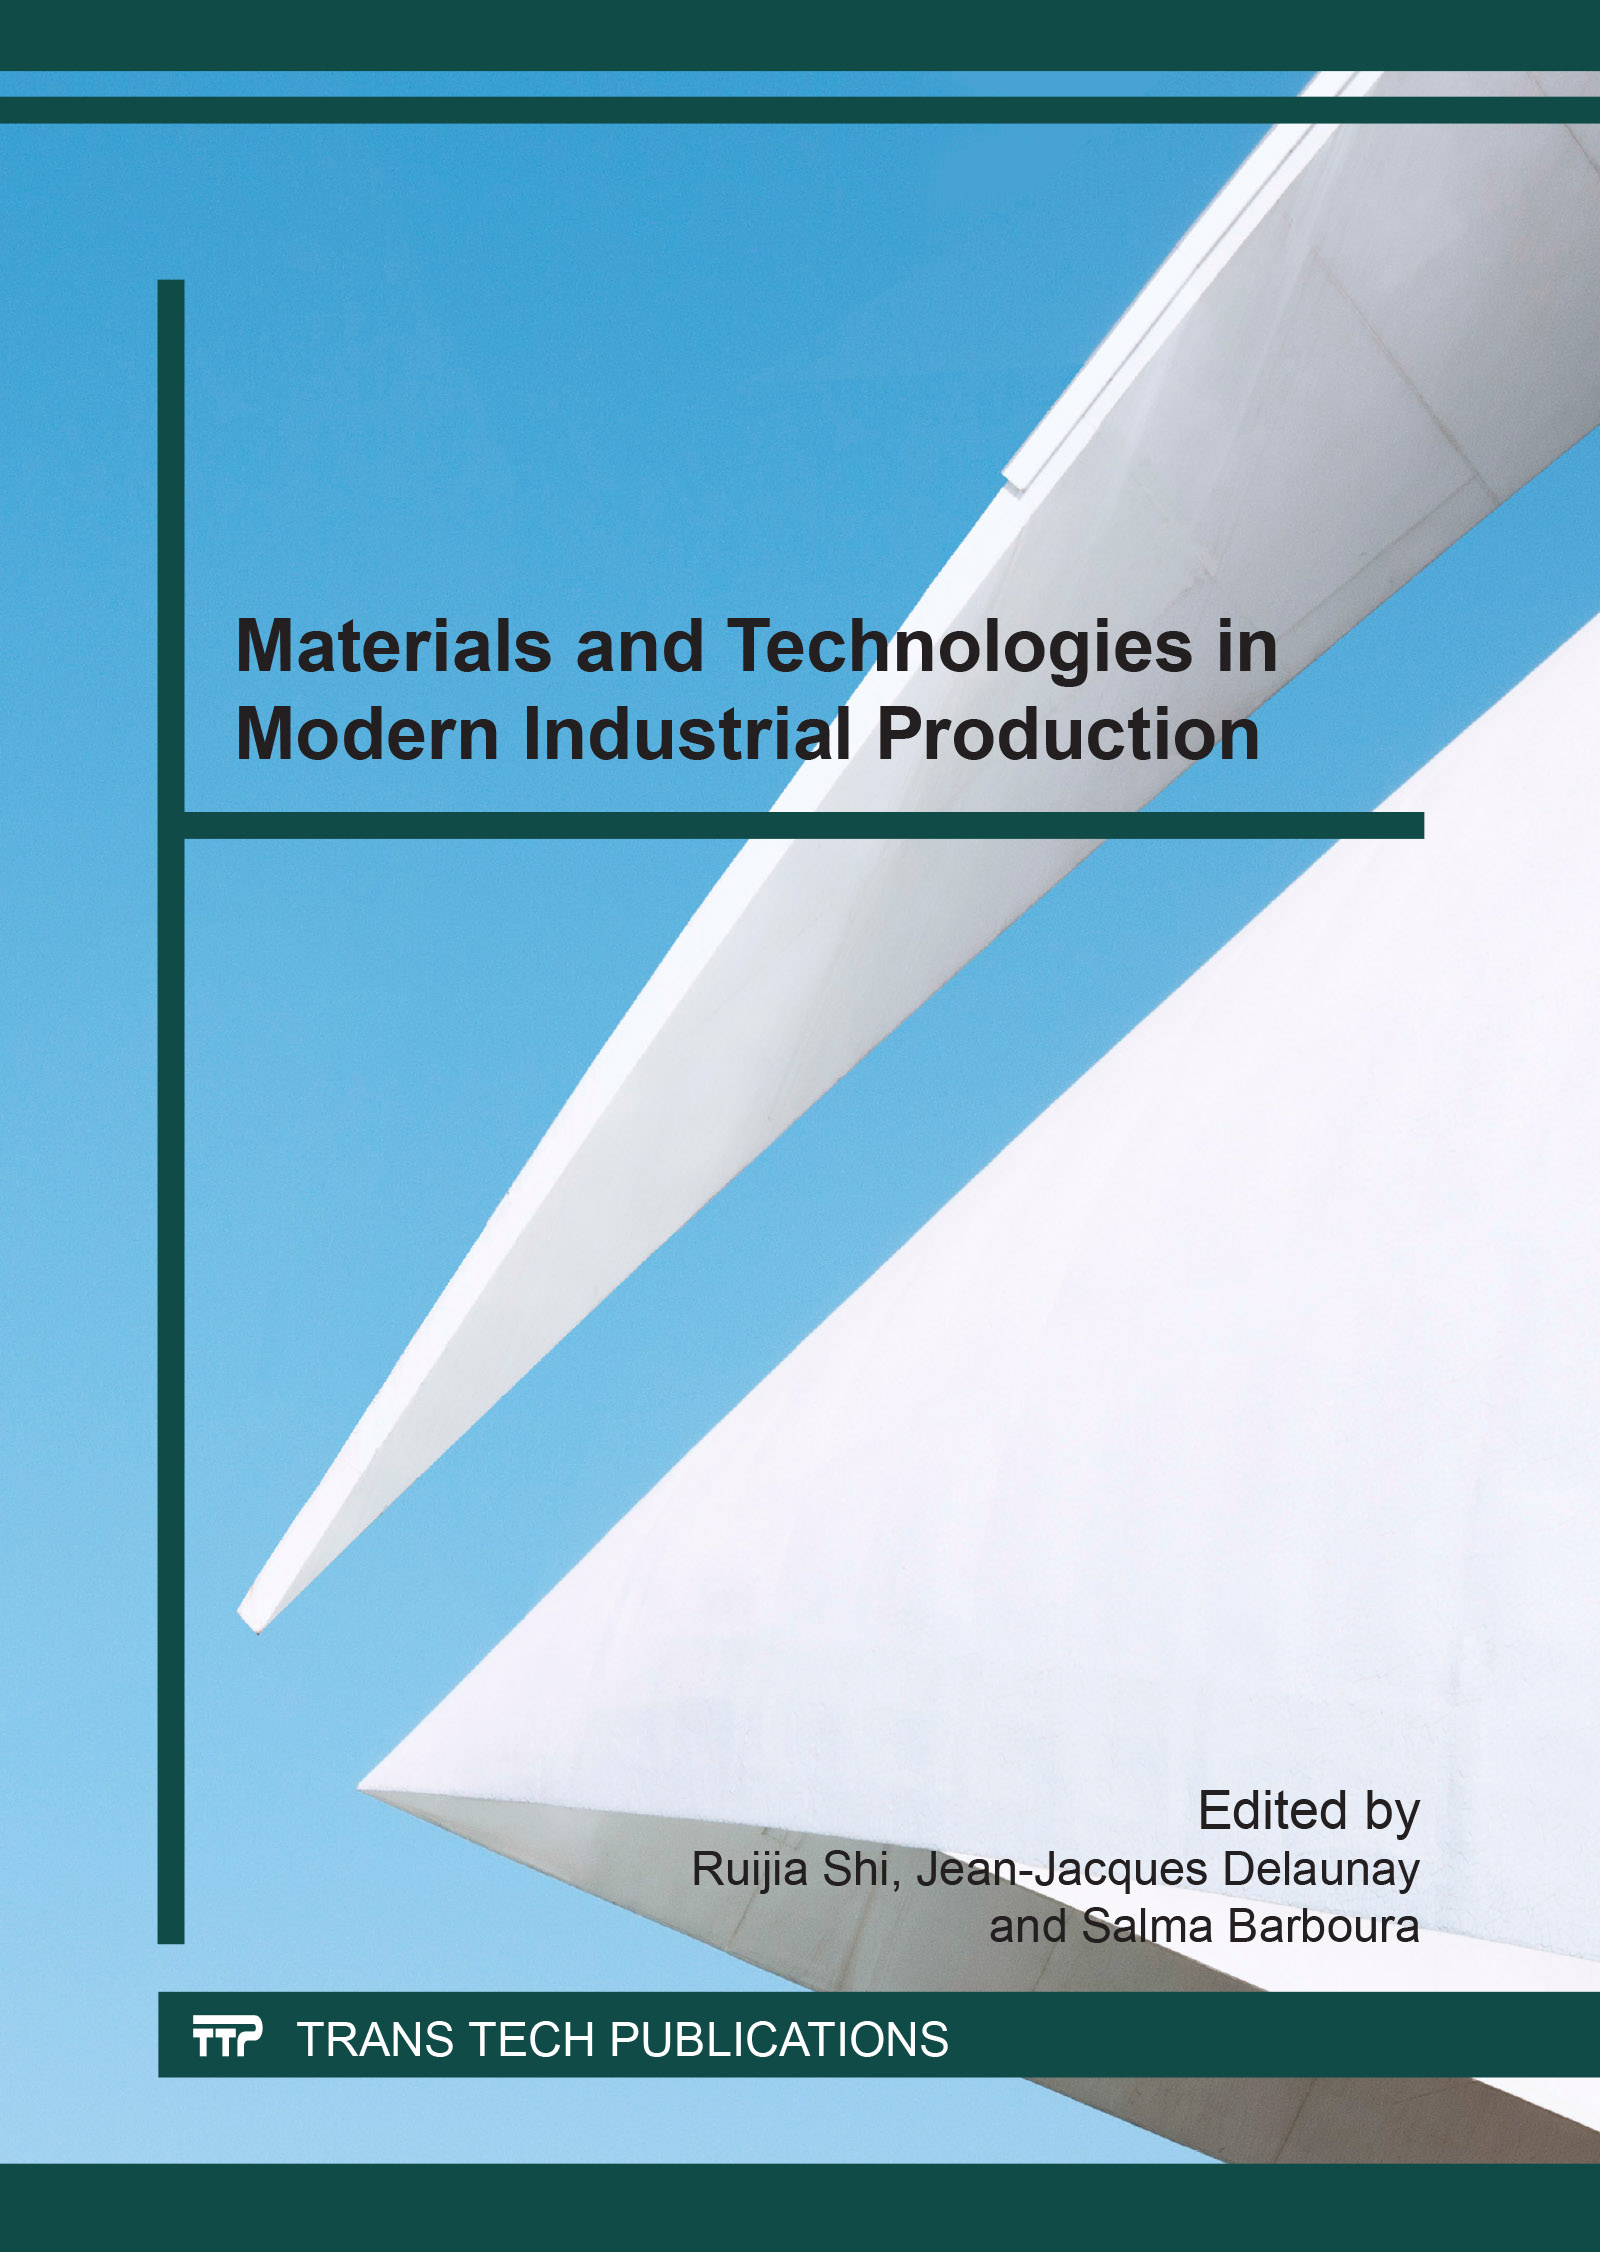 Materials and Technologies in Modern Industrial Production